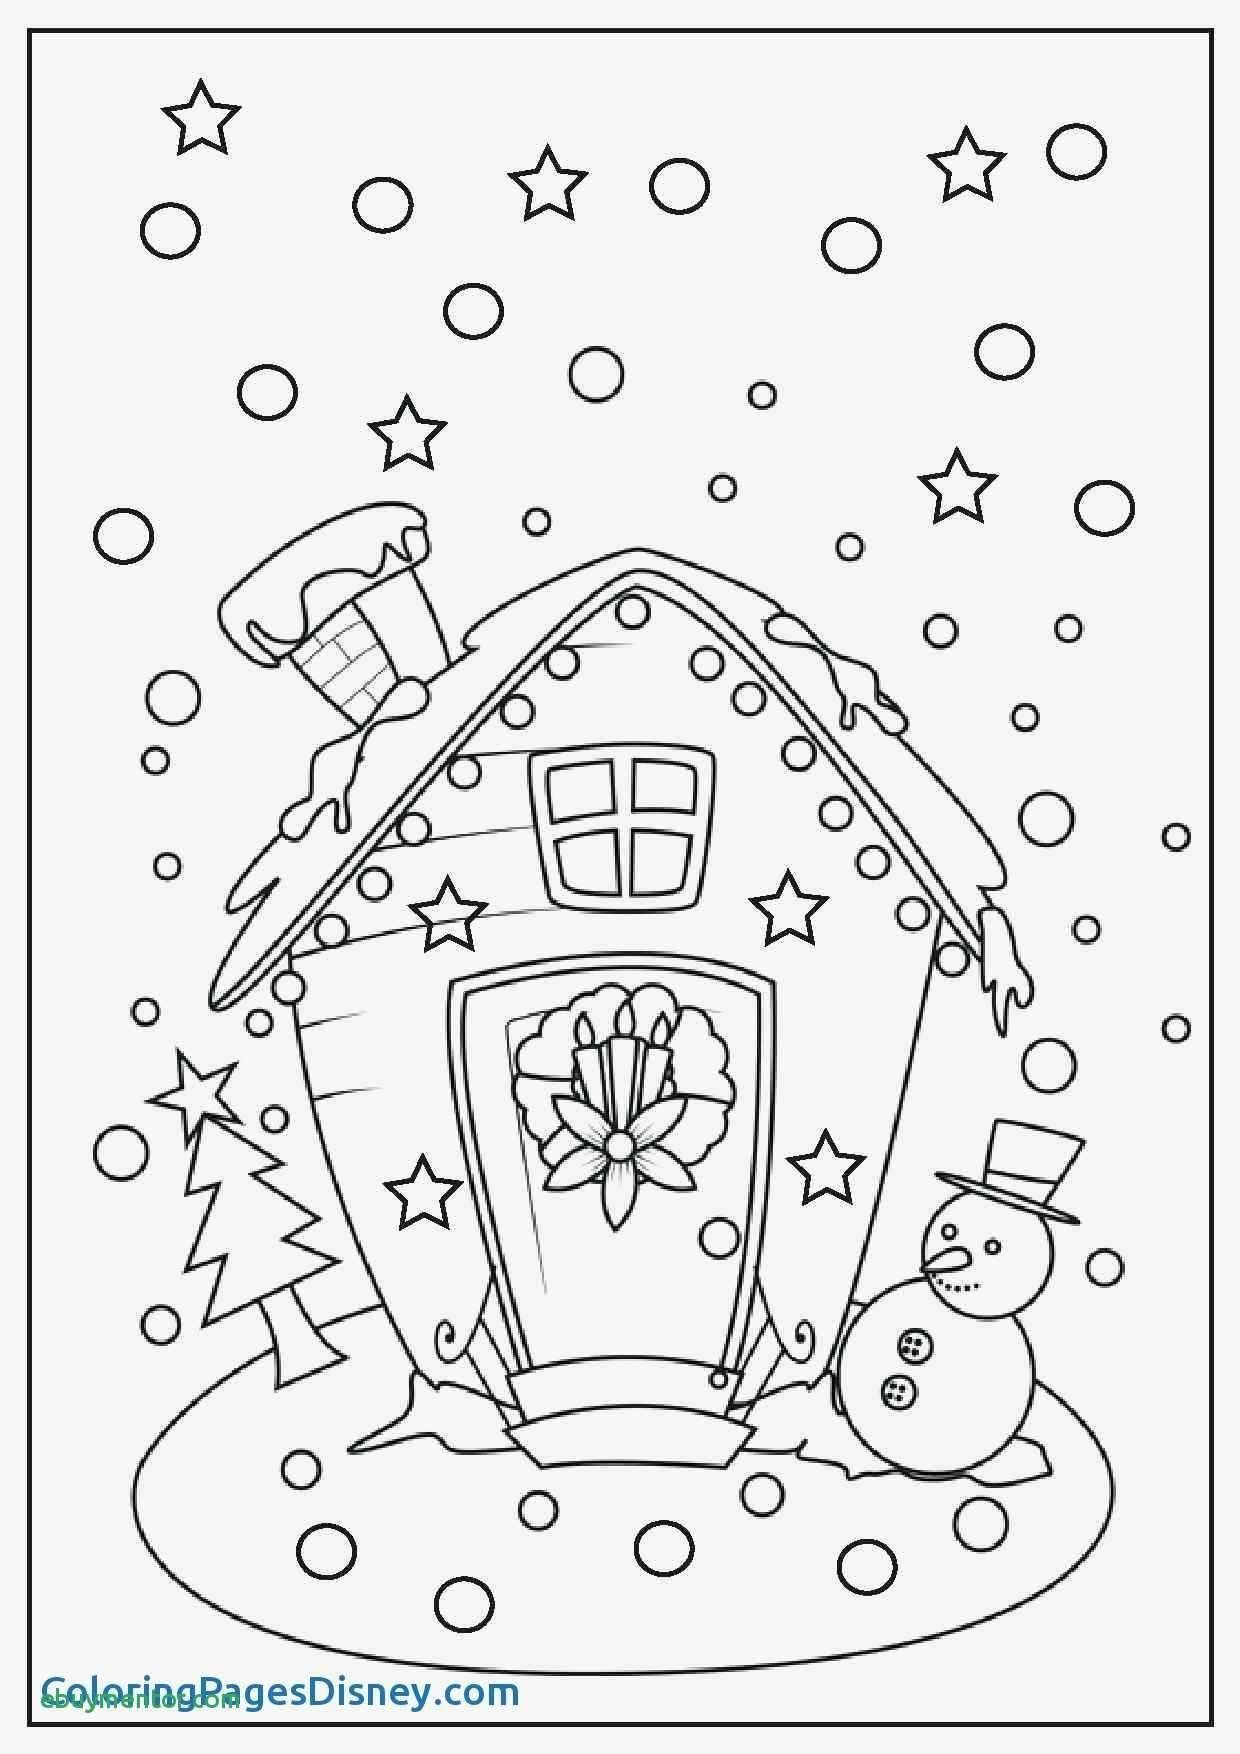 Missing Letters Worksheets Pdf Coloring Kids Easter Colorings Free Pr Printable Christmas Coloring Pages Christmas Coloring Sheets Coloring Pages Inspirational